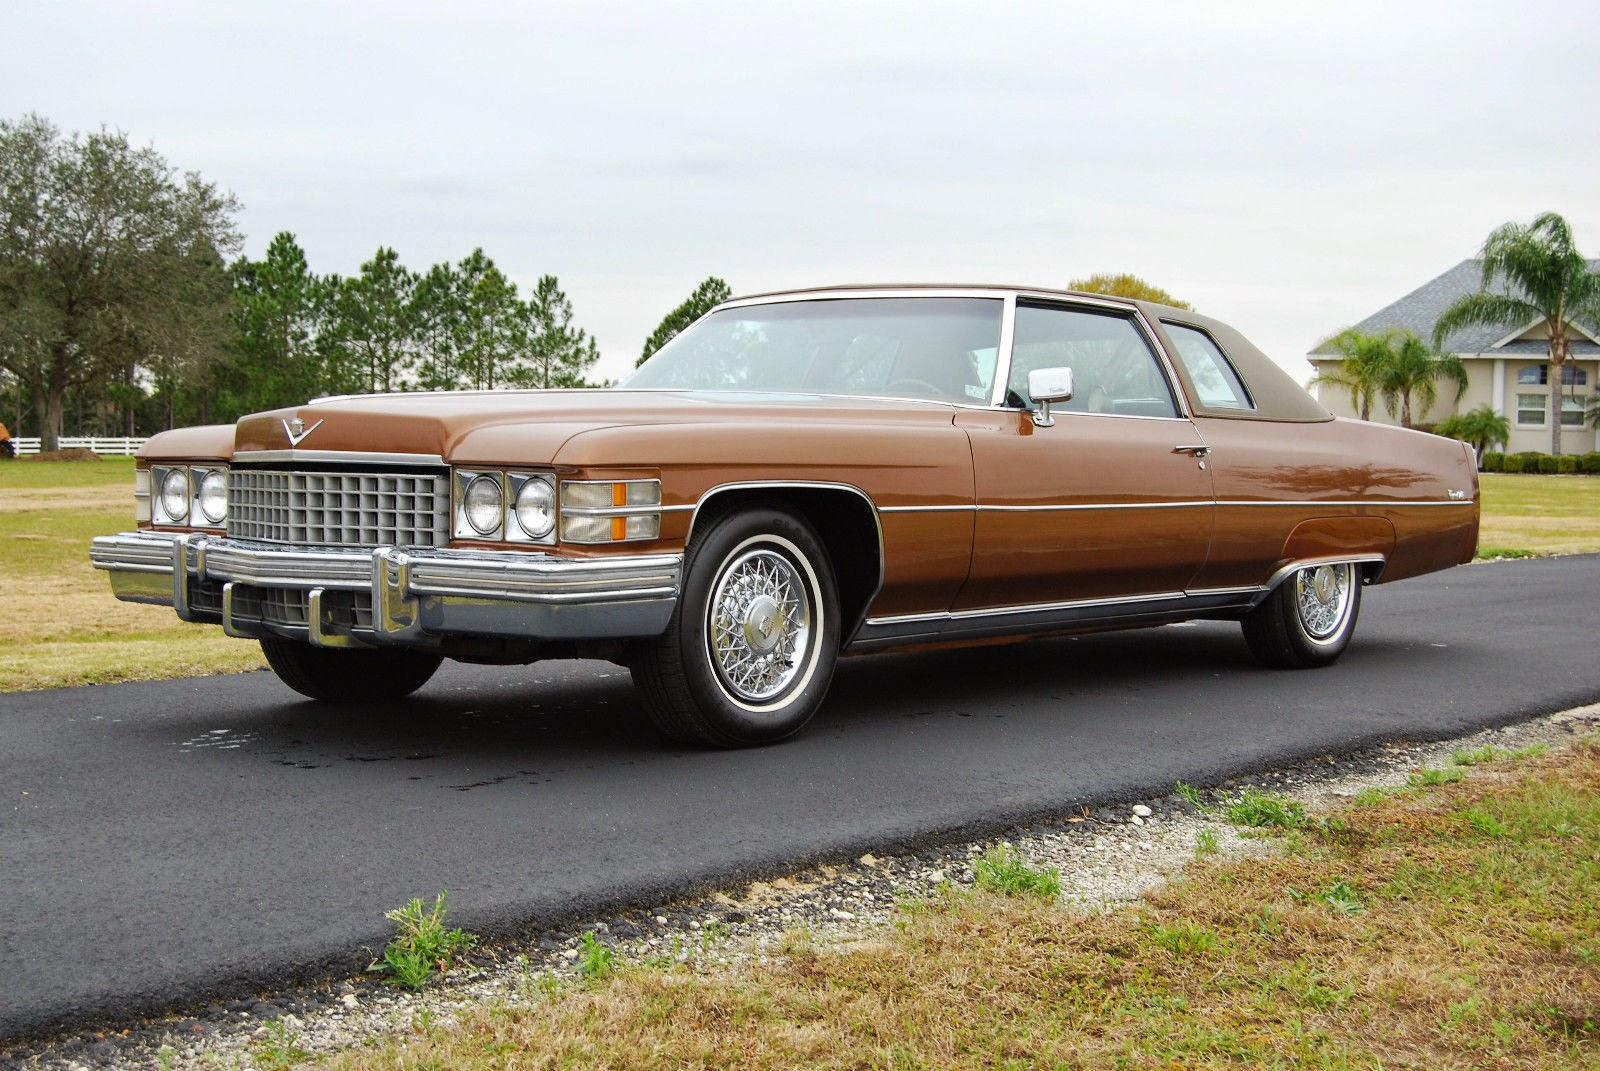 1966 Pontiac Catalina 2 Door Convertible further 1974 Cadillac Coupe De Ville 2 Door as well Img301 as well 1978 Chrysler Newport 4 Door Hardtop besides 1955 Chrysler Windsor Deluxe Series photo. on 1978 lincoln town car images